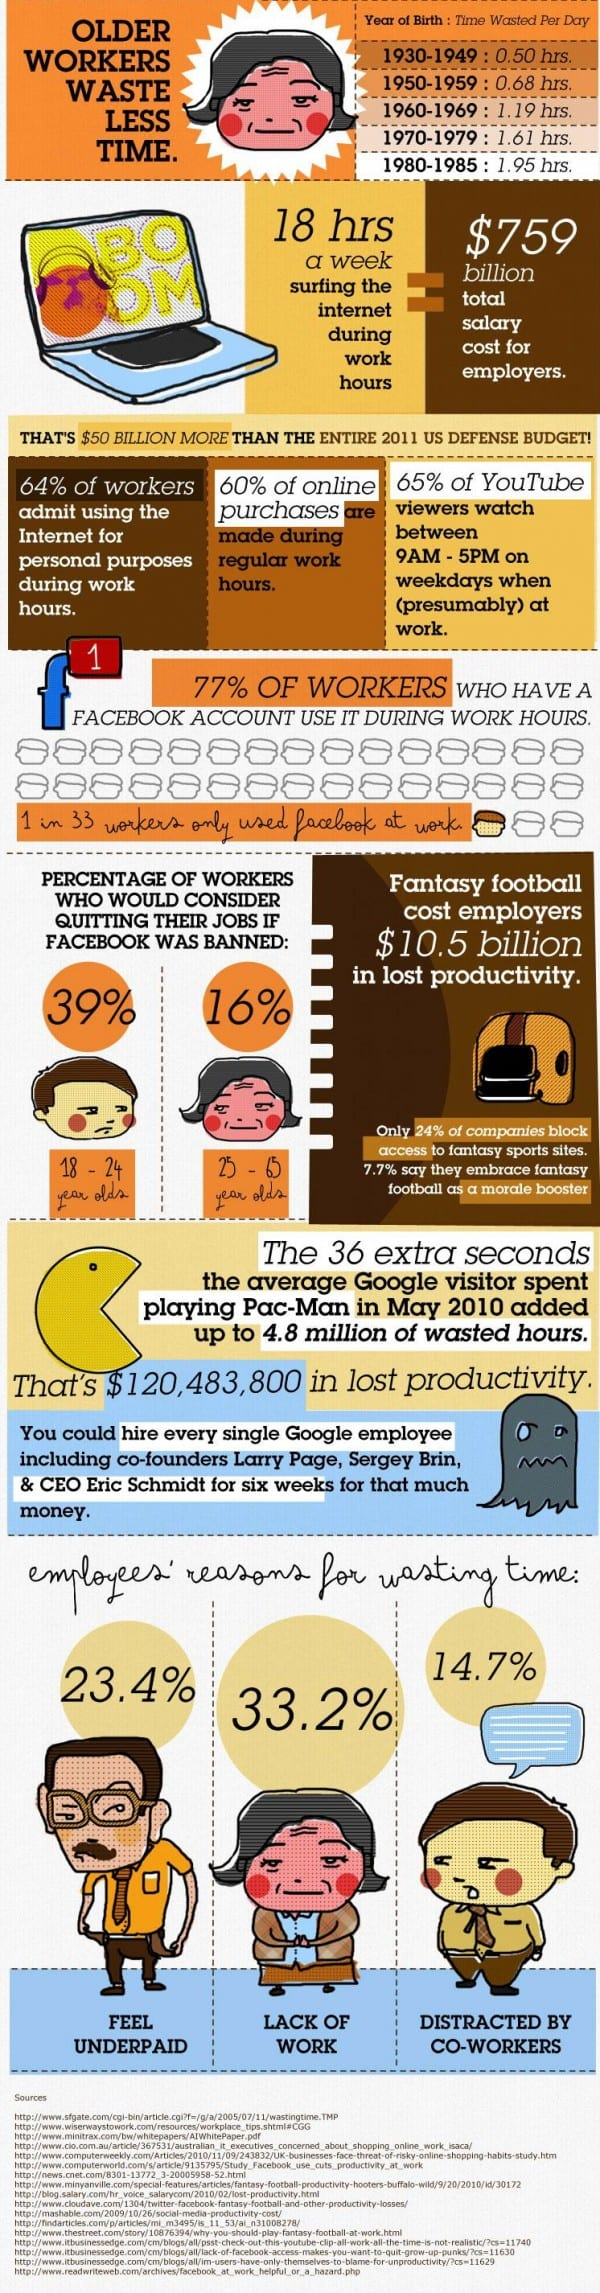 Older Workers Waste Less Time Infographic